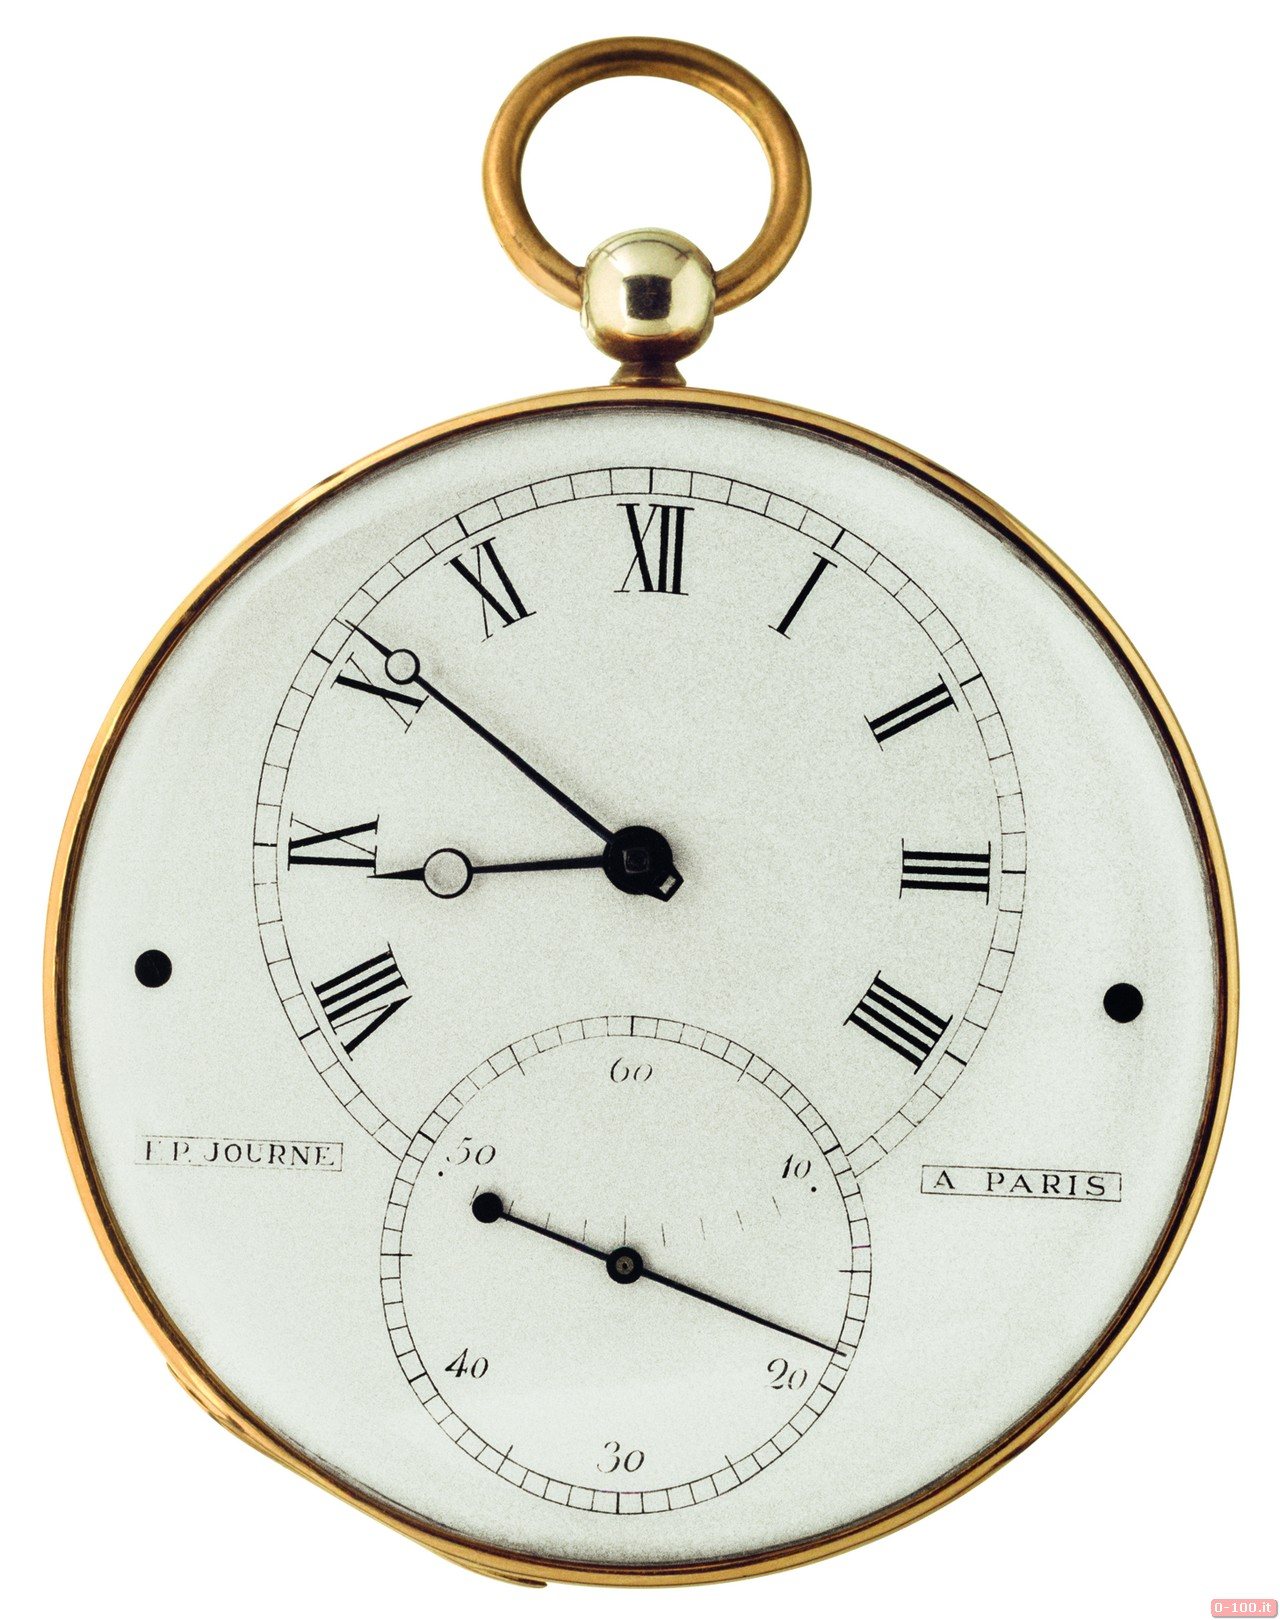 anniversary-edition-2013-of-the-first-pocket-watch-with-tourbillon-by-francois-paul-journe__0-1001